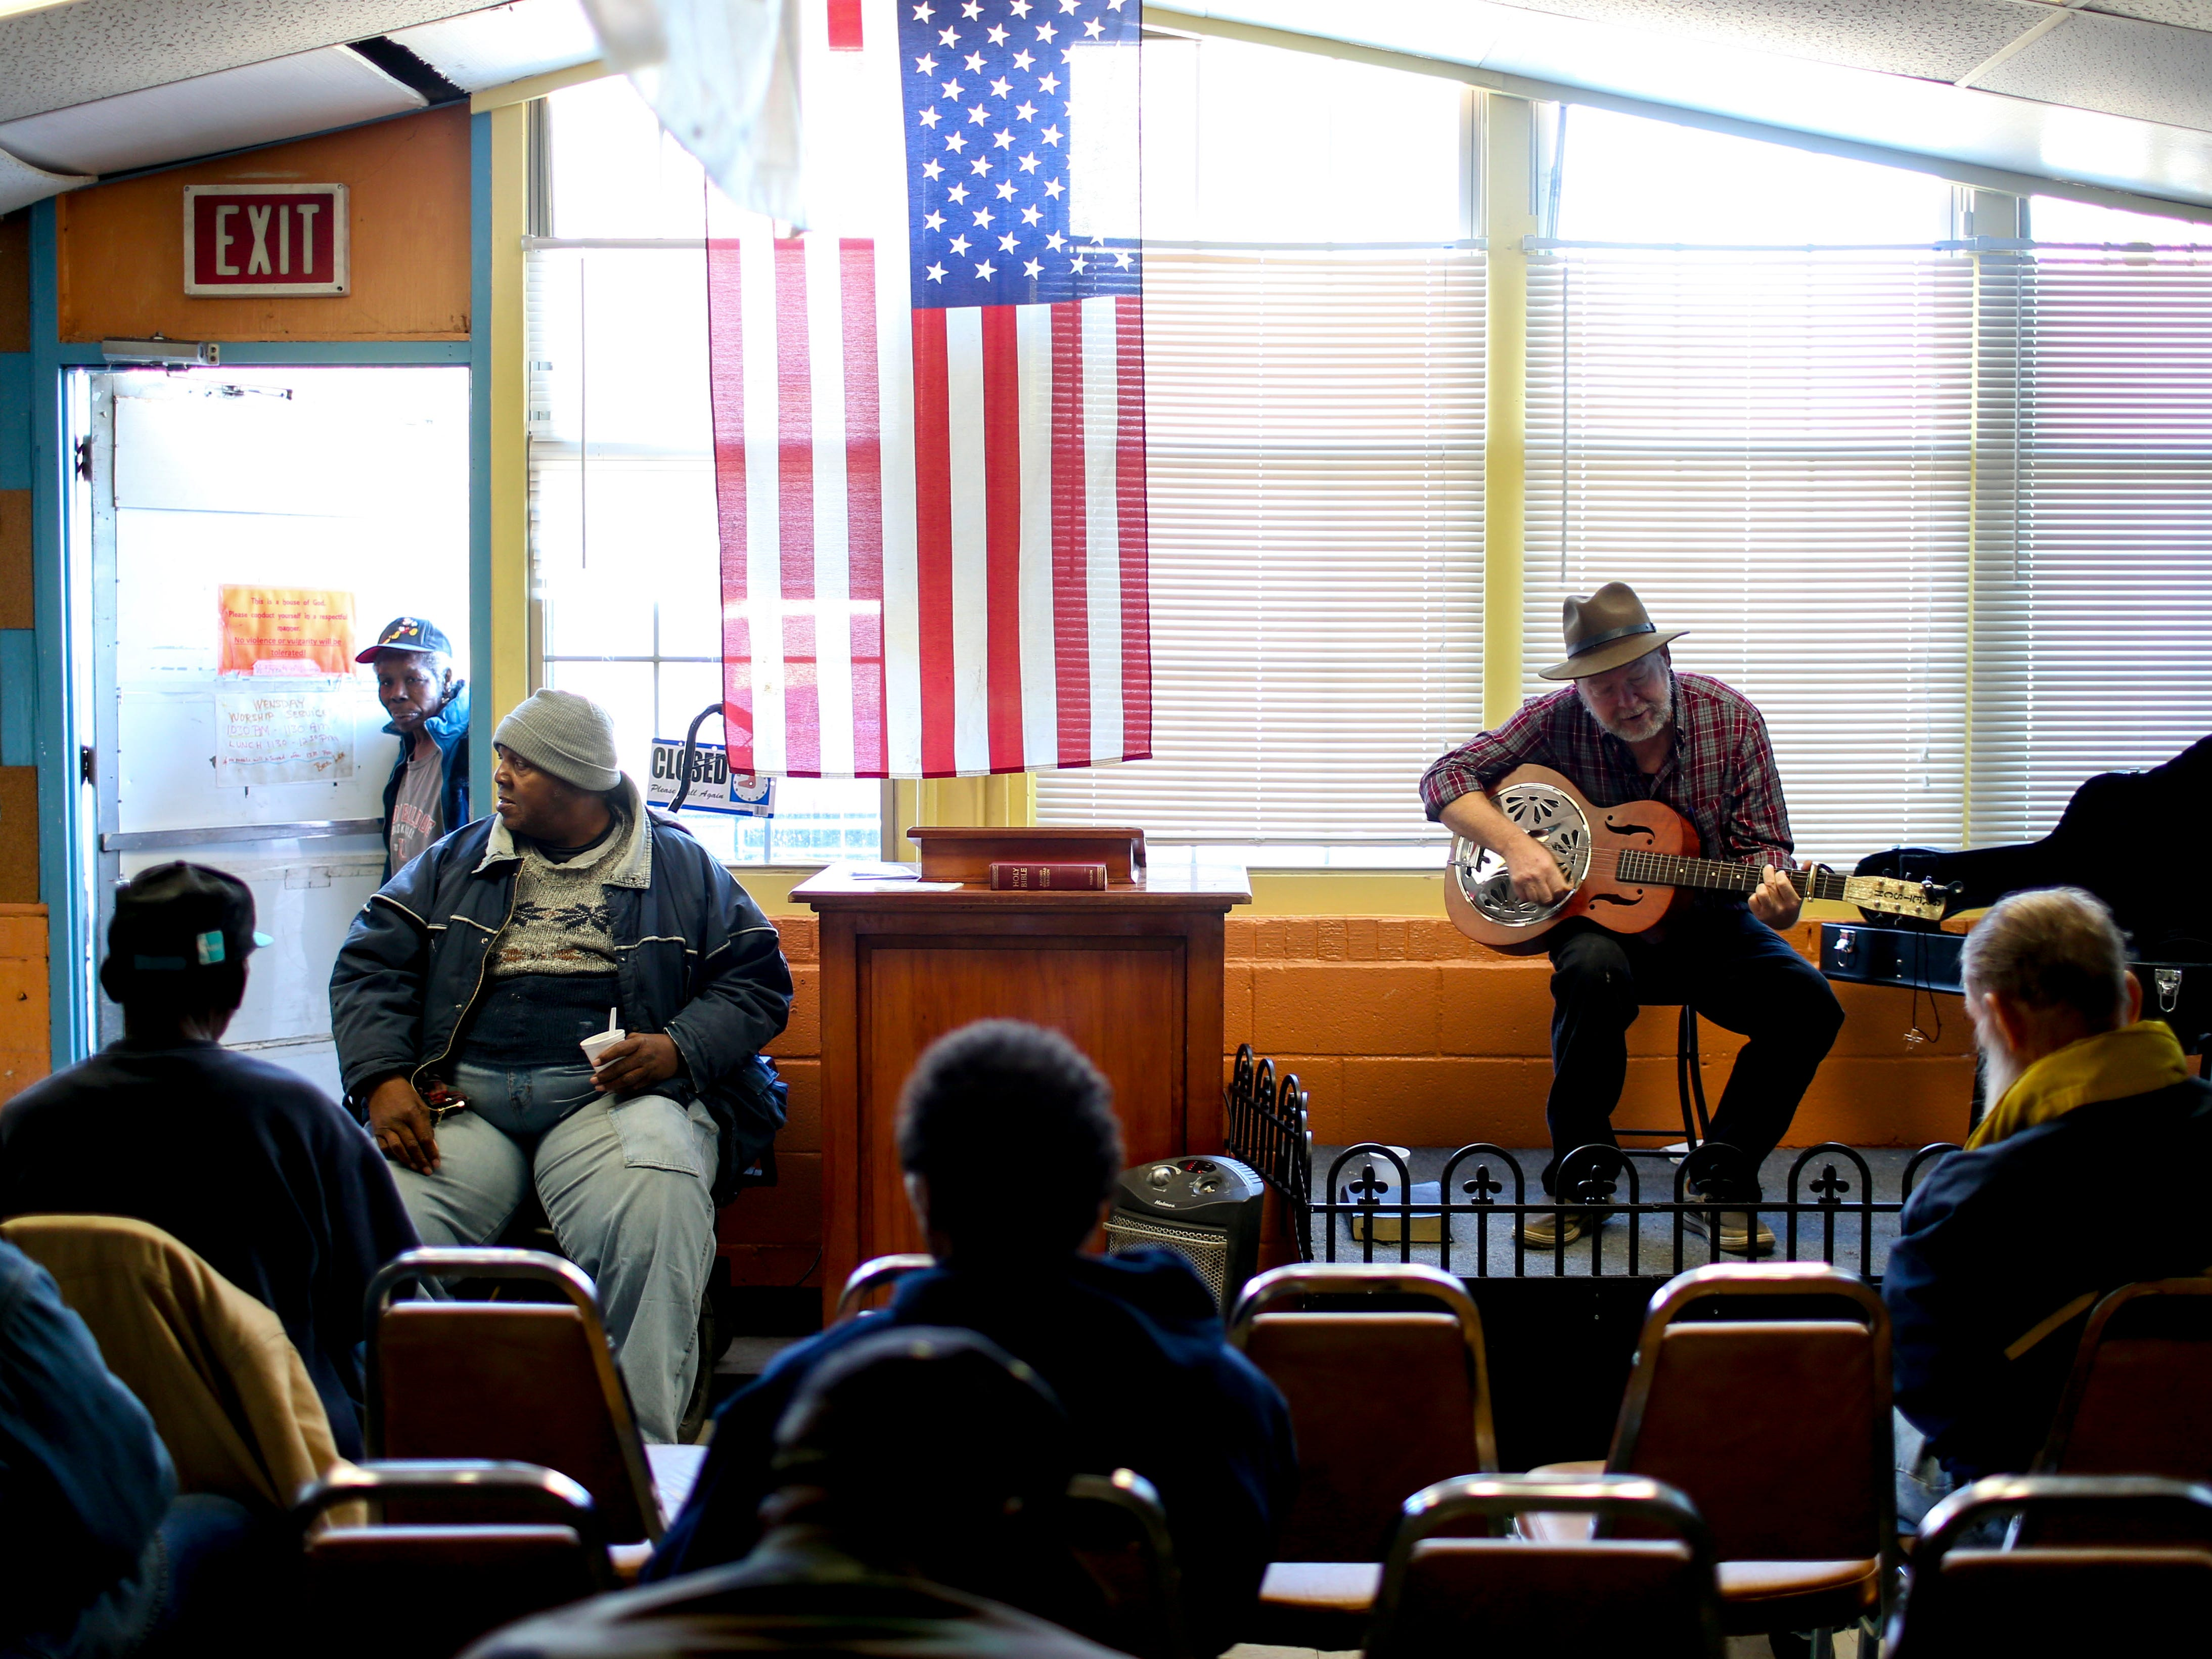 Lee Gaugh, right, sings and plays guitar at the annual Thanksgiving meal put on by Safe Harbor Day Mission in Jackson, Tenn., on Wednesday, Nov. 21, 2018.